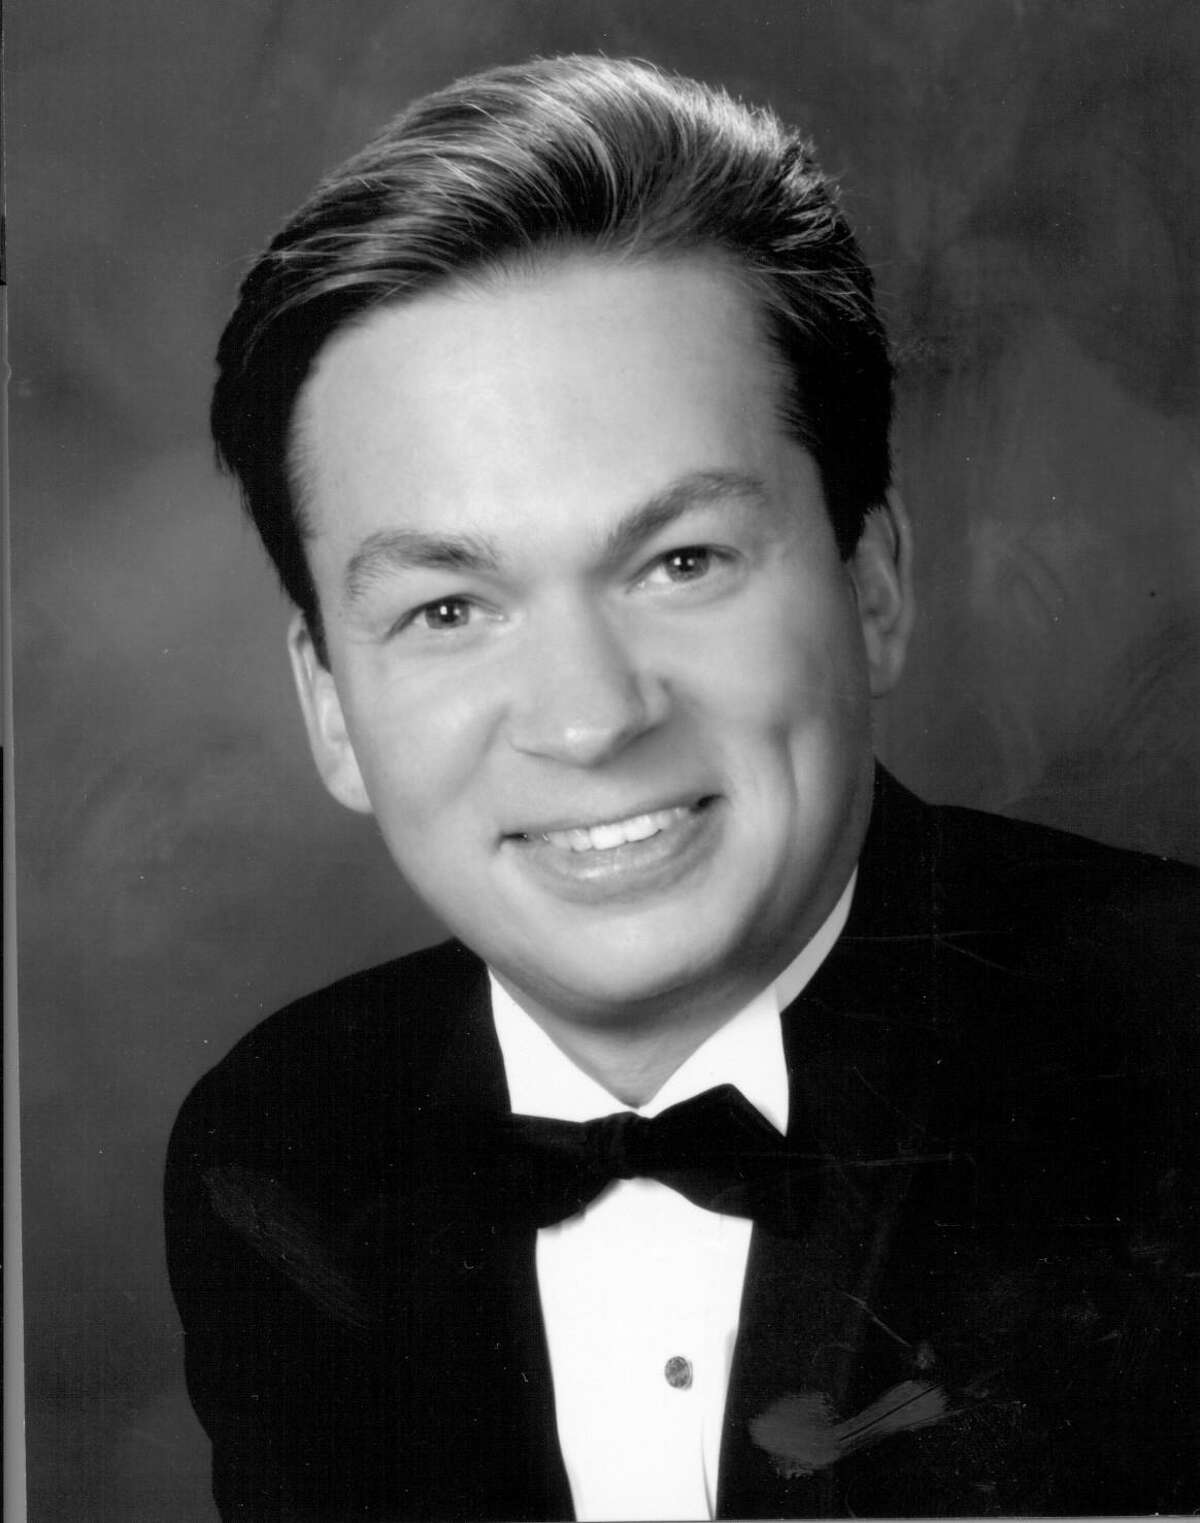 """Robert Tweten will conduct and play harpsichord for Opera San Antonio's production of """"Don Giovanni."""""""